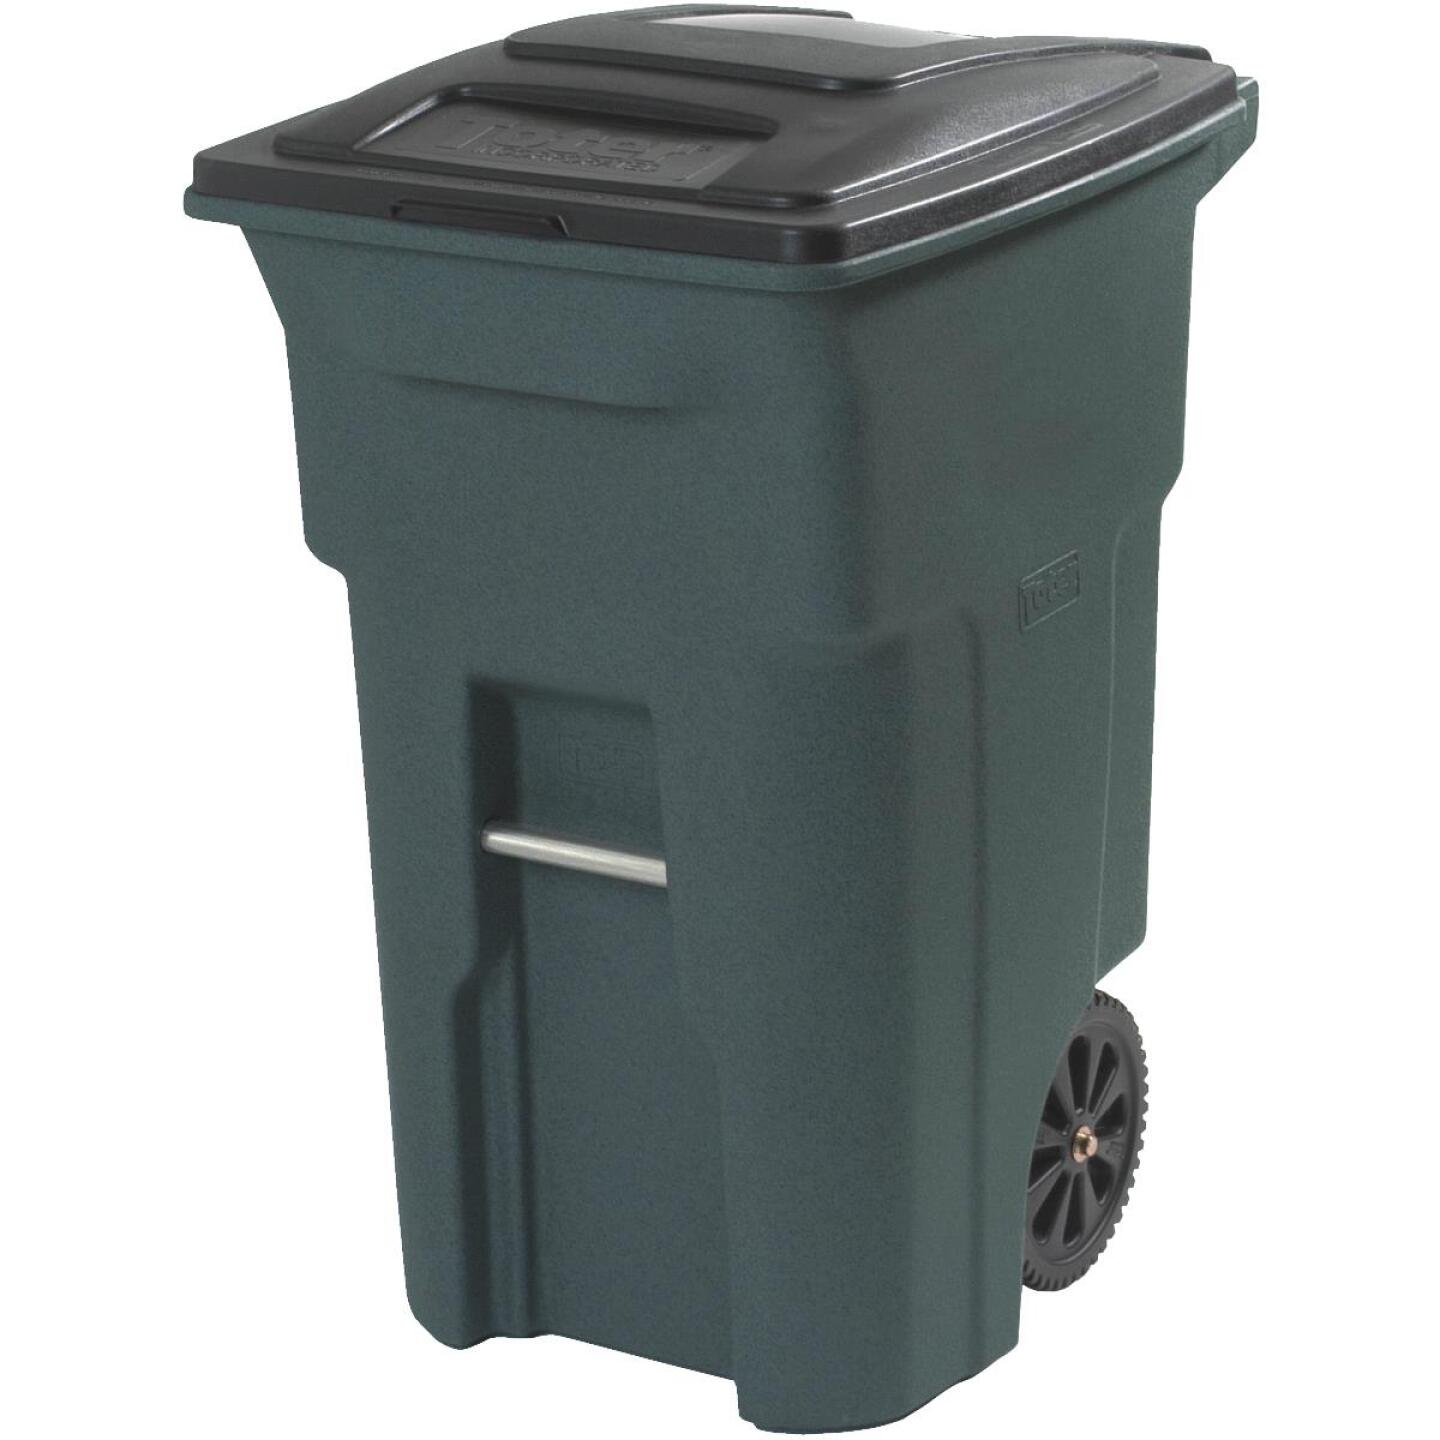 Toter 96 Gal. Commercial Trash Can Image 1